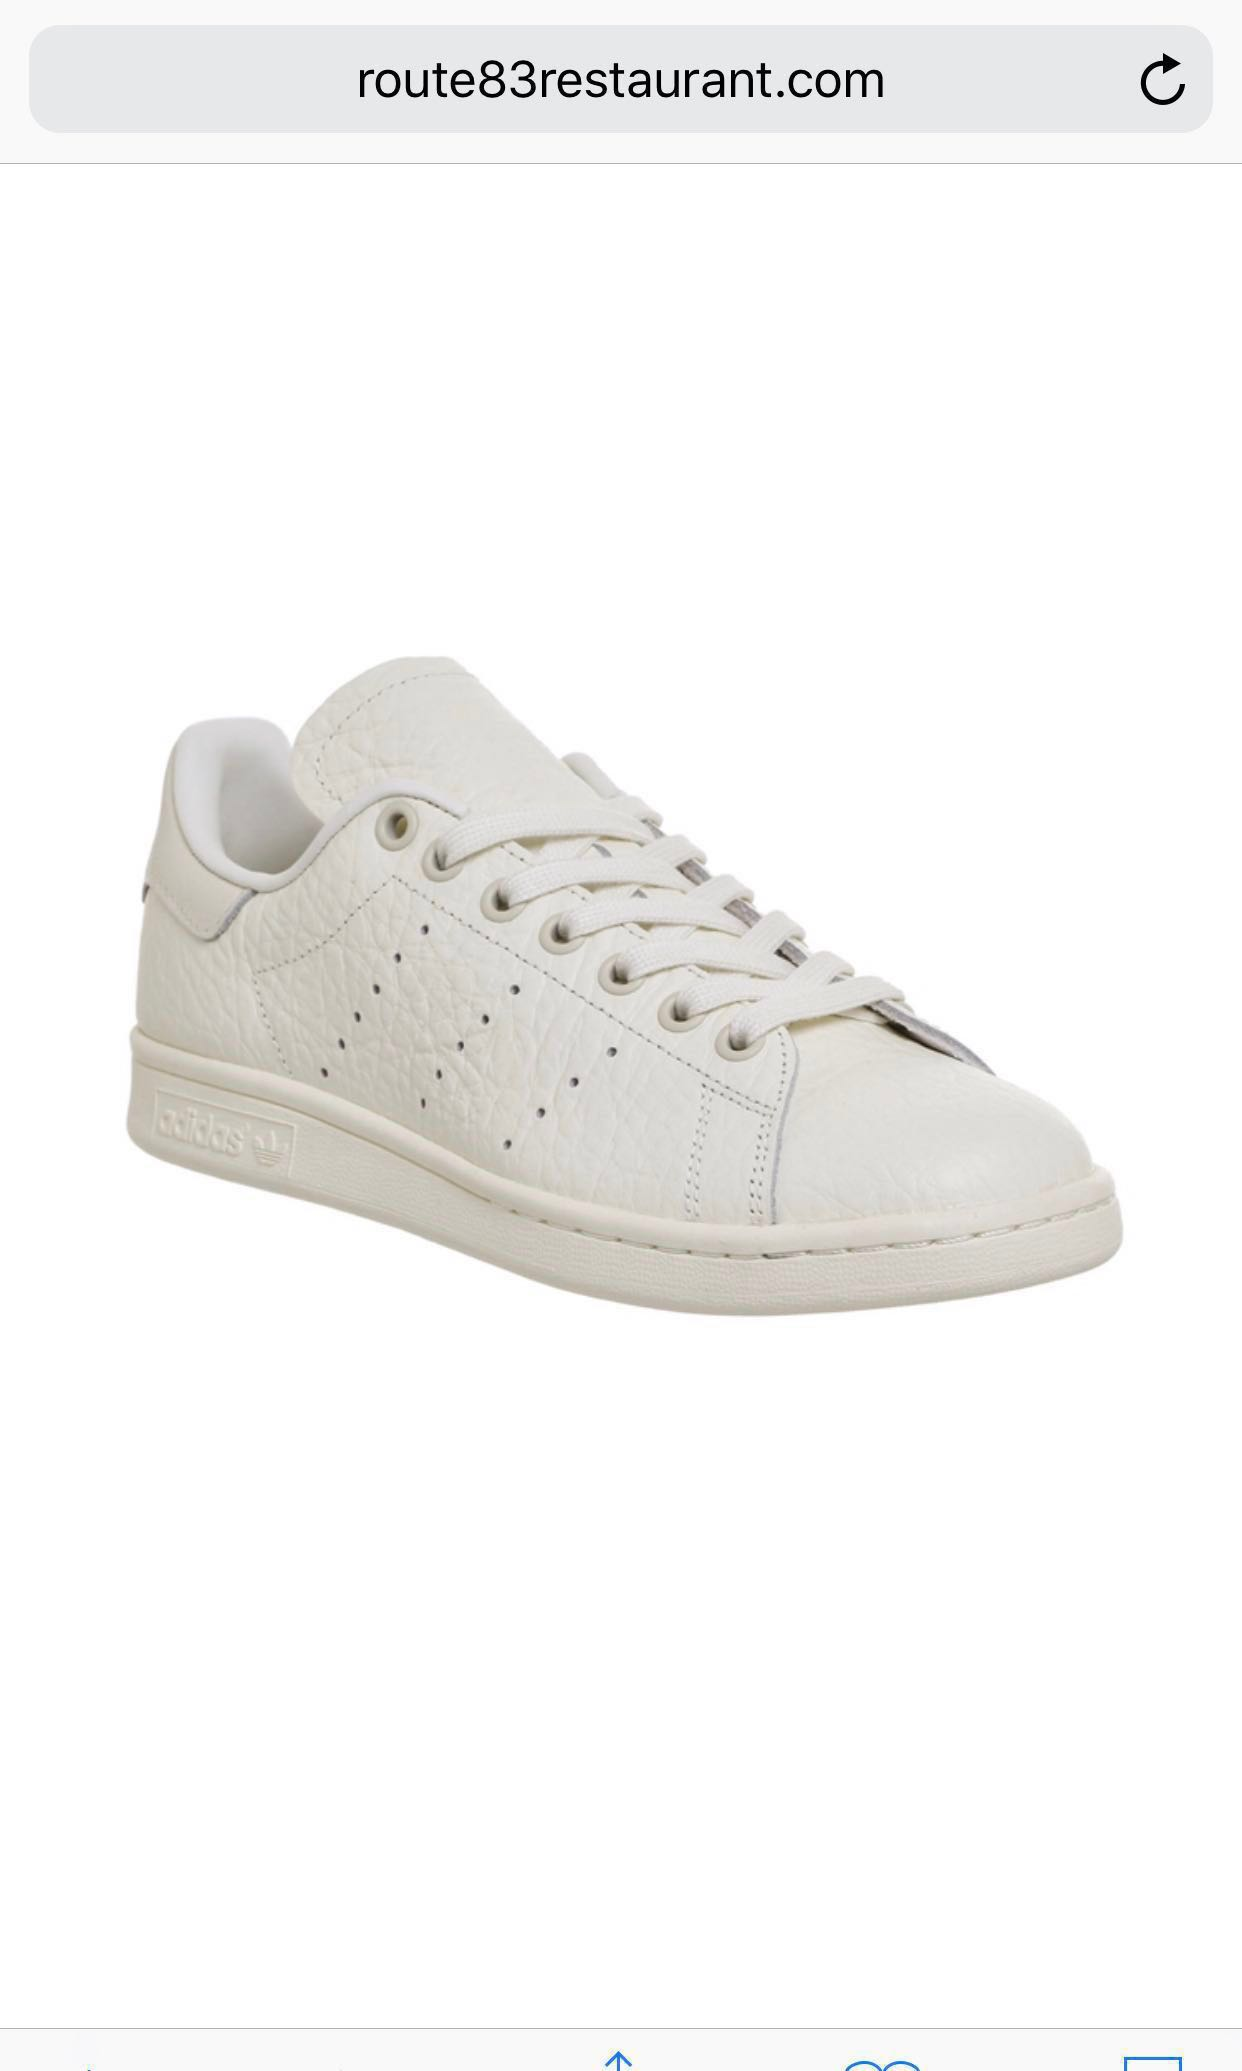 (NEW!!) Adidas Originals Off White Textured Leather Trainers